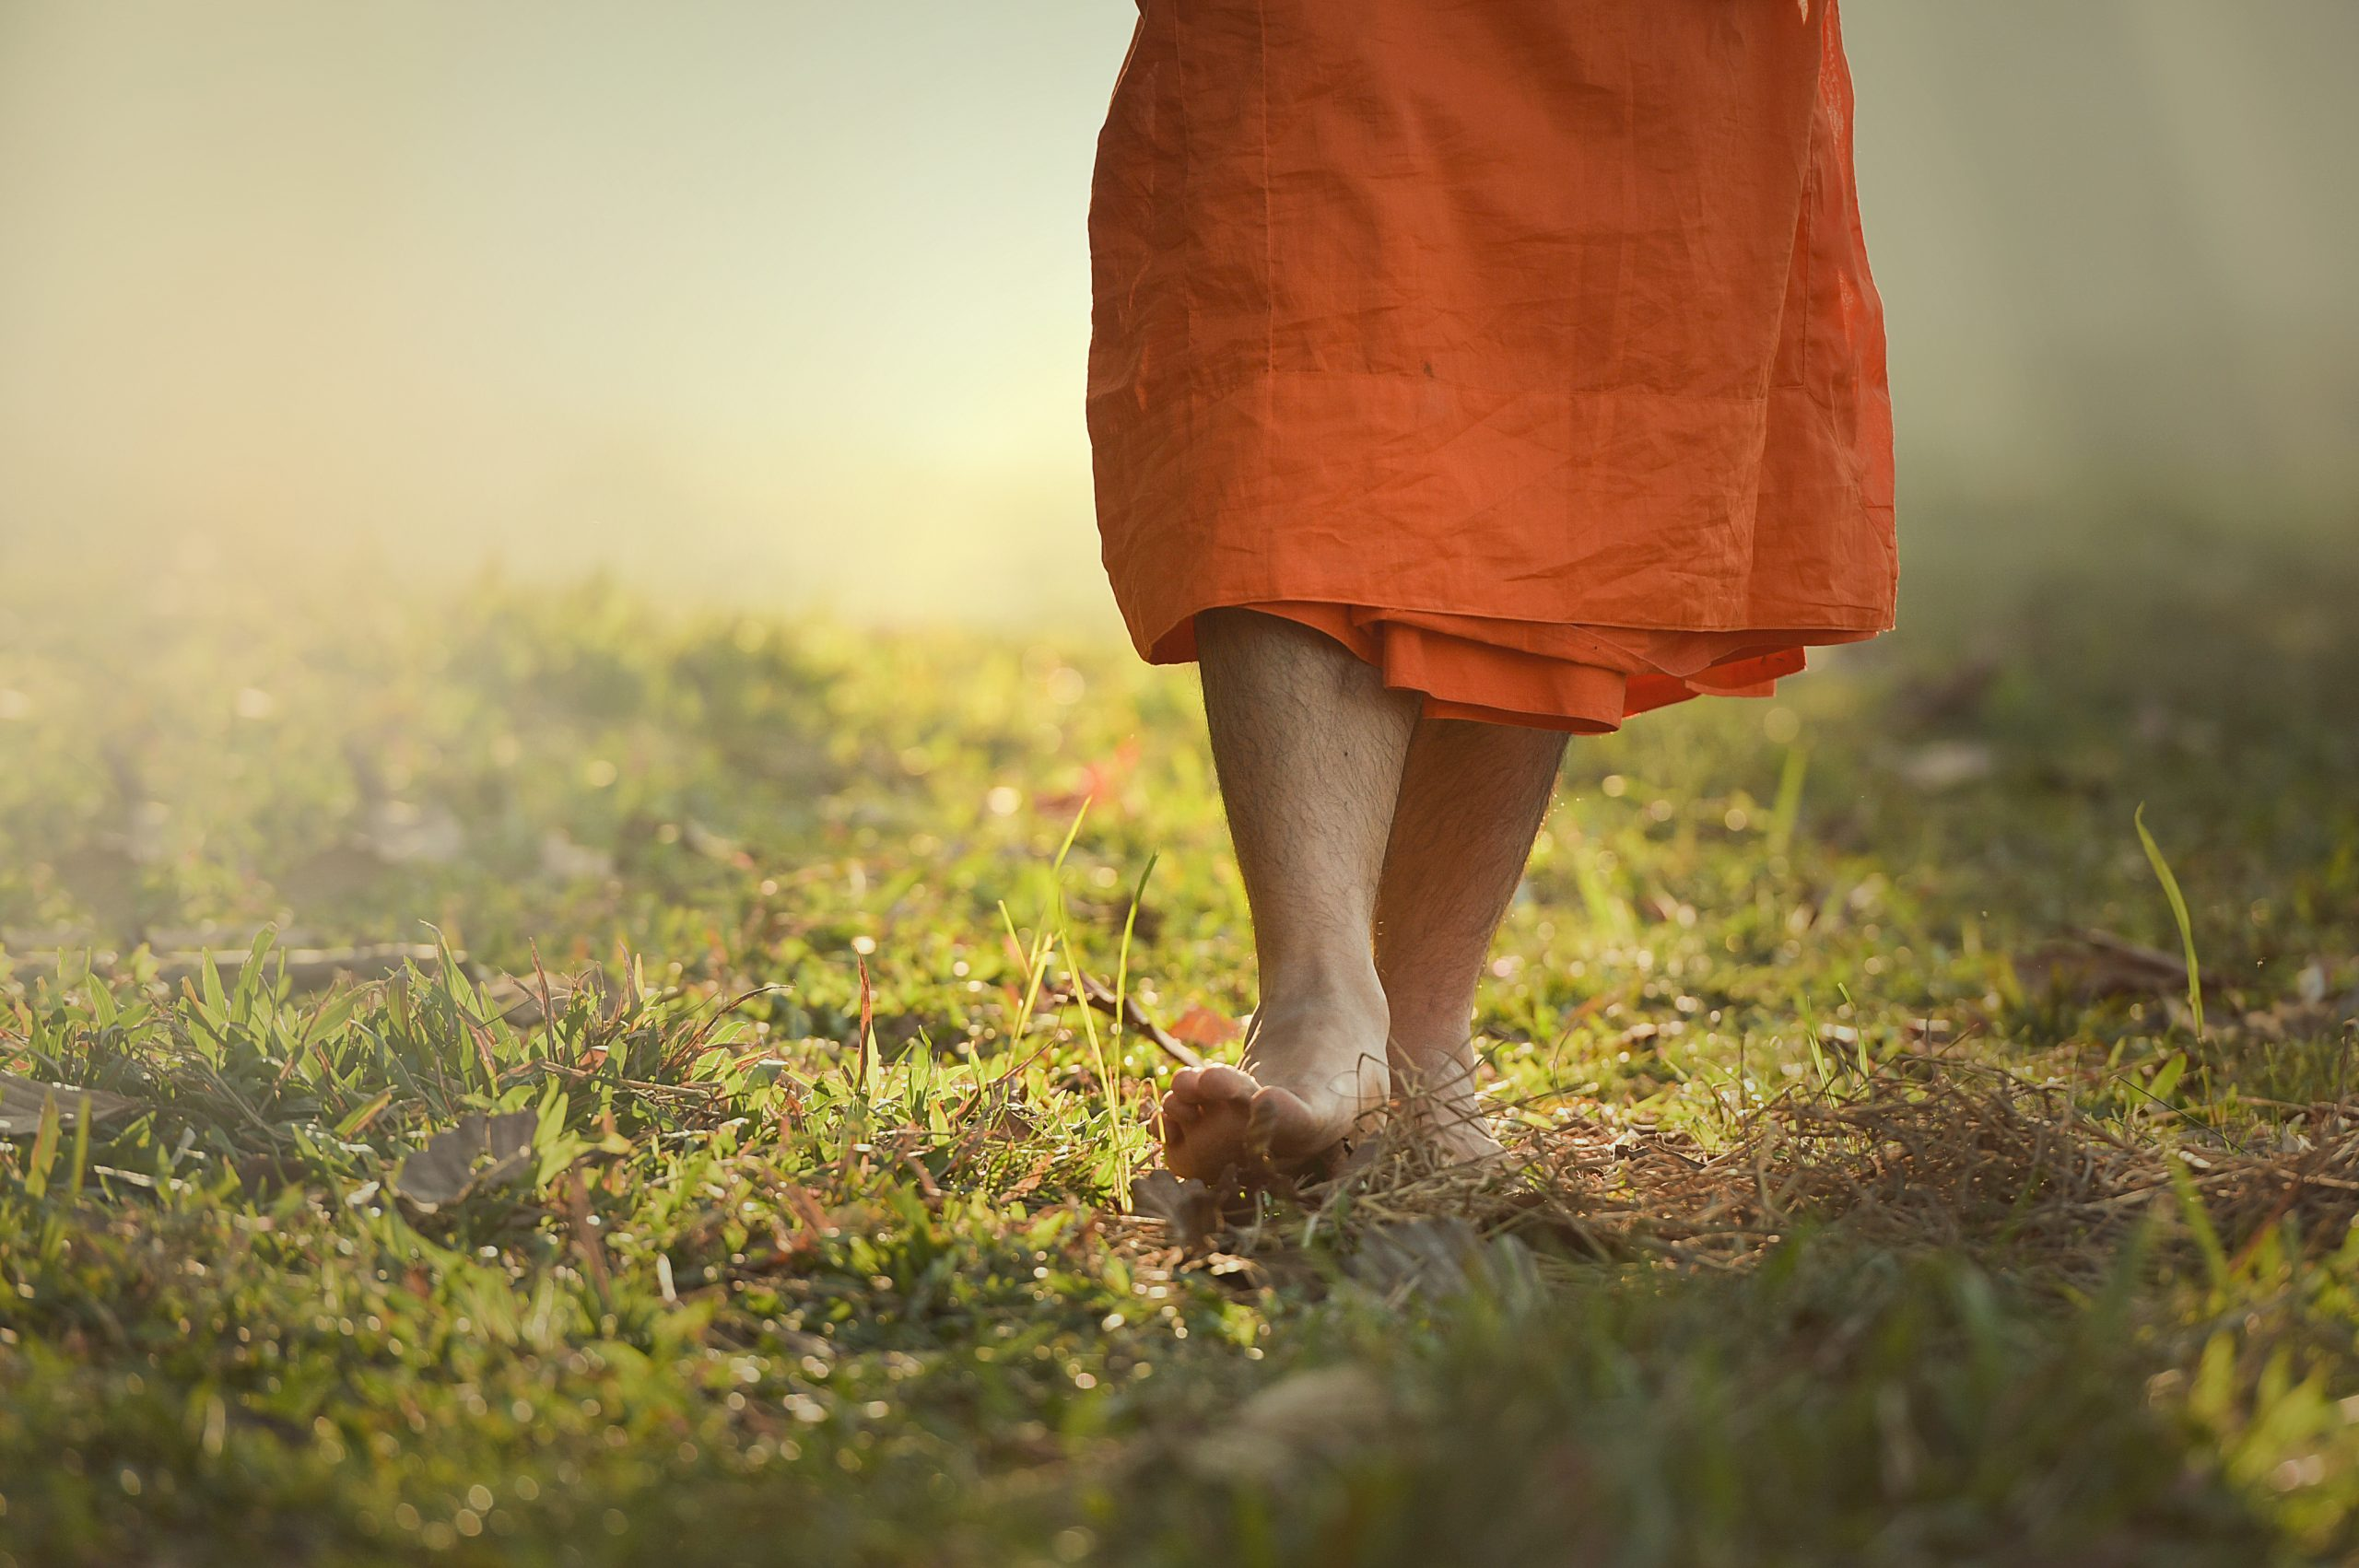 Buddhist monks walk on the grass